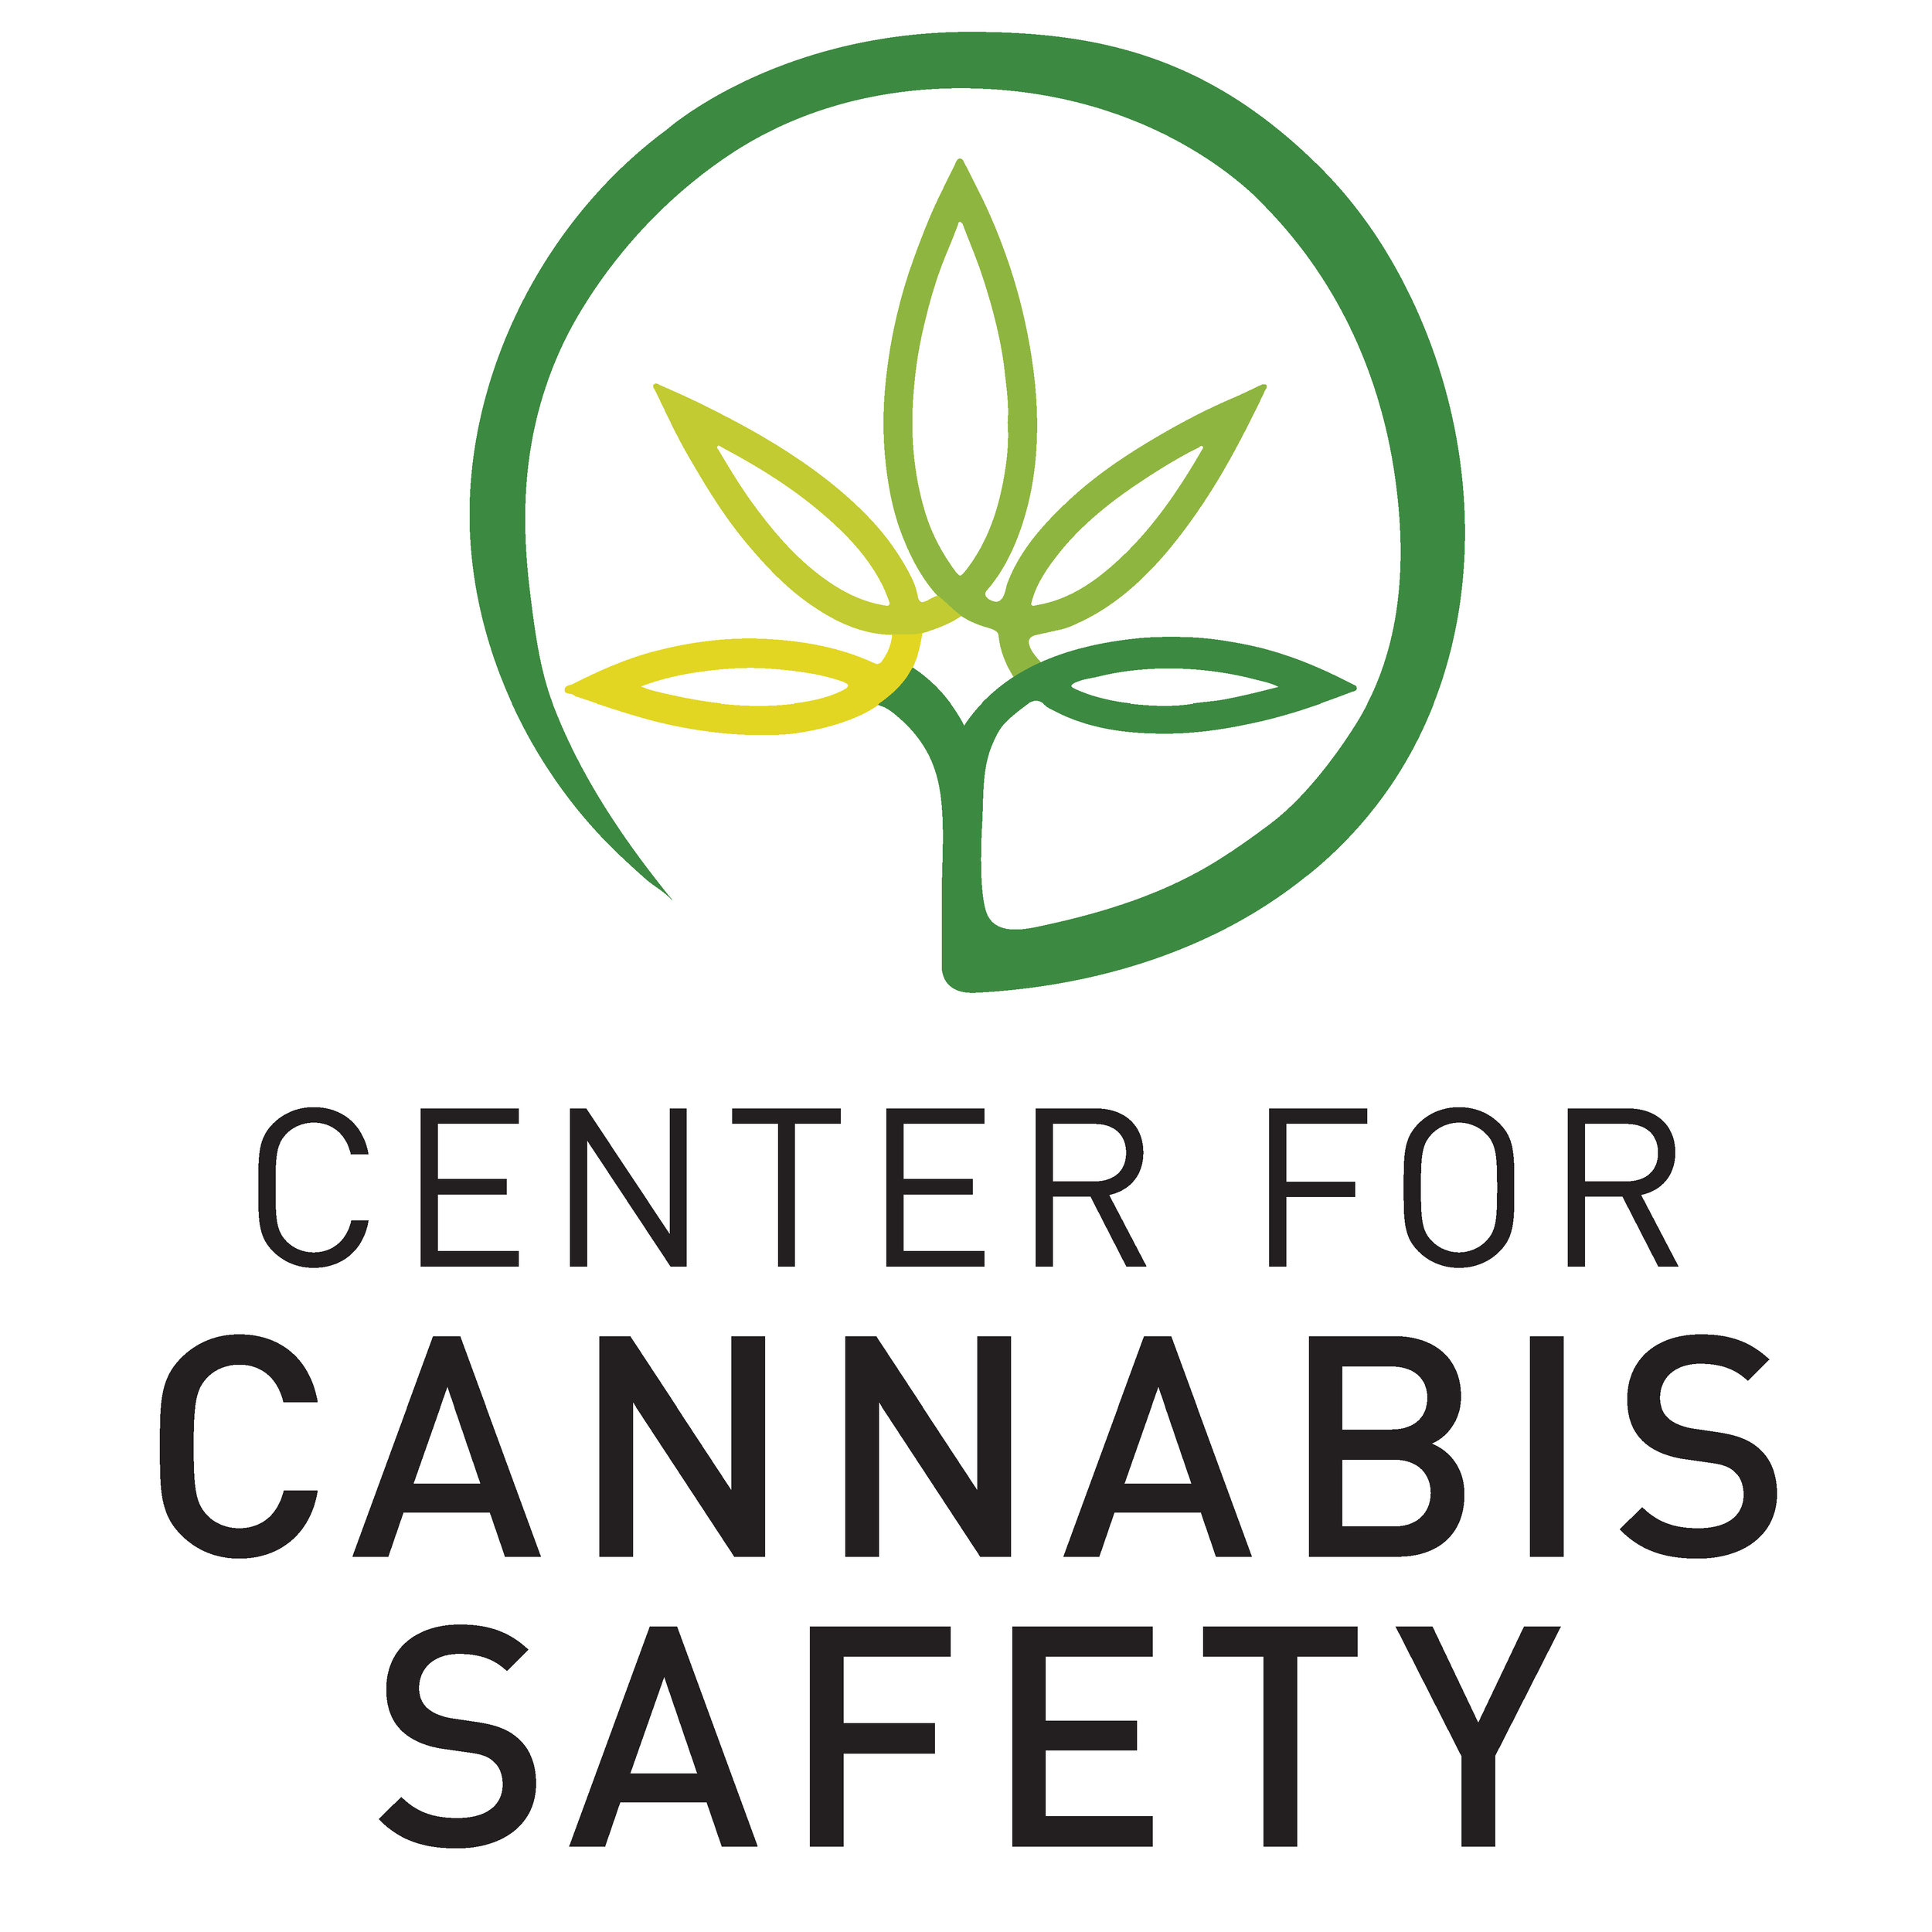 About - About Center for Cannabis Safety,our mission and projects.